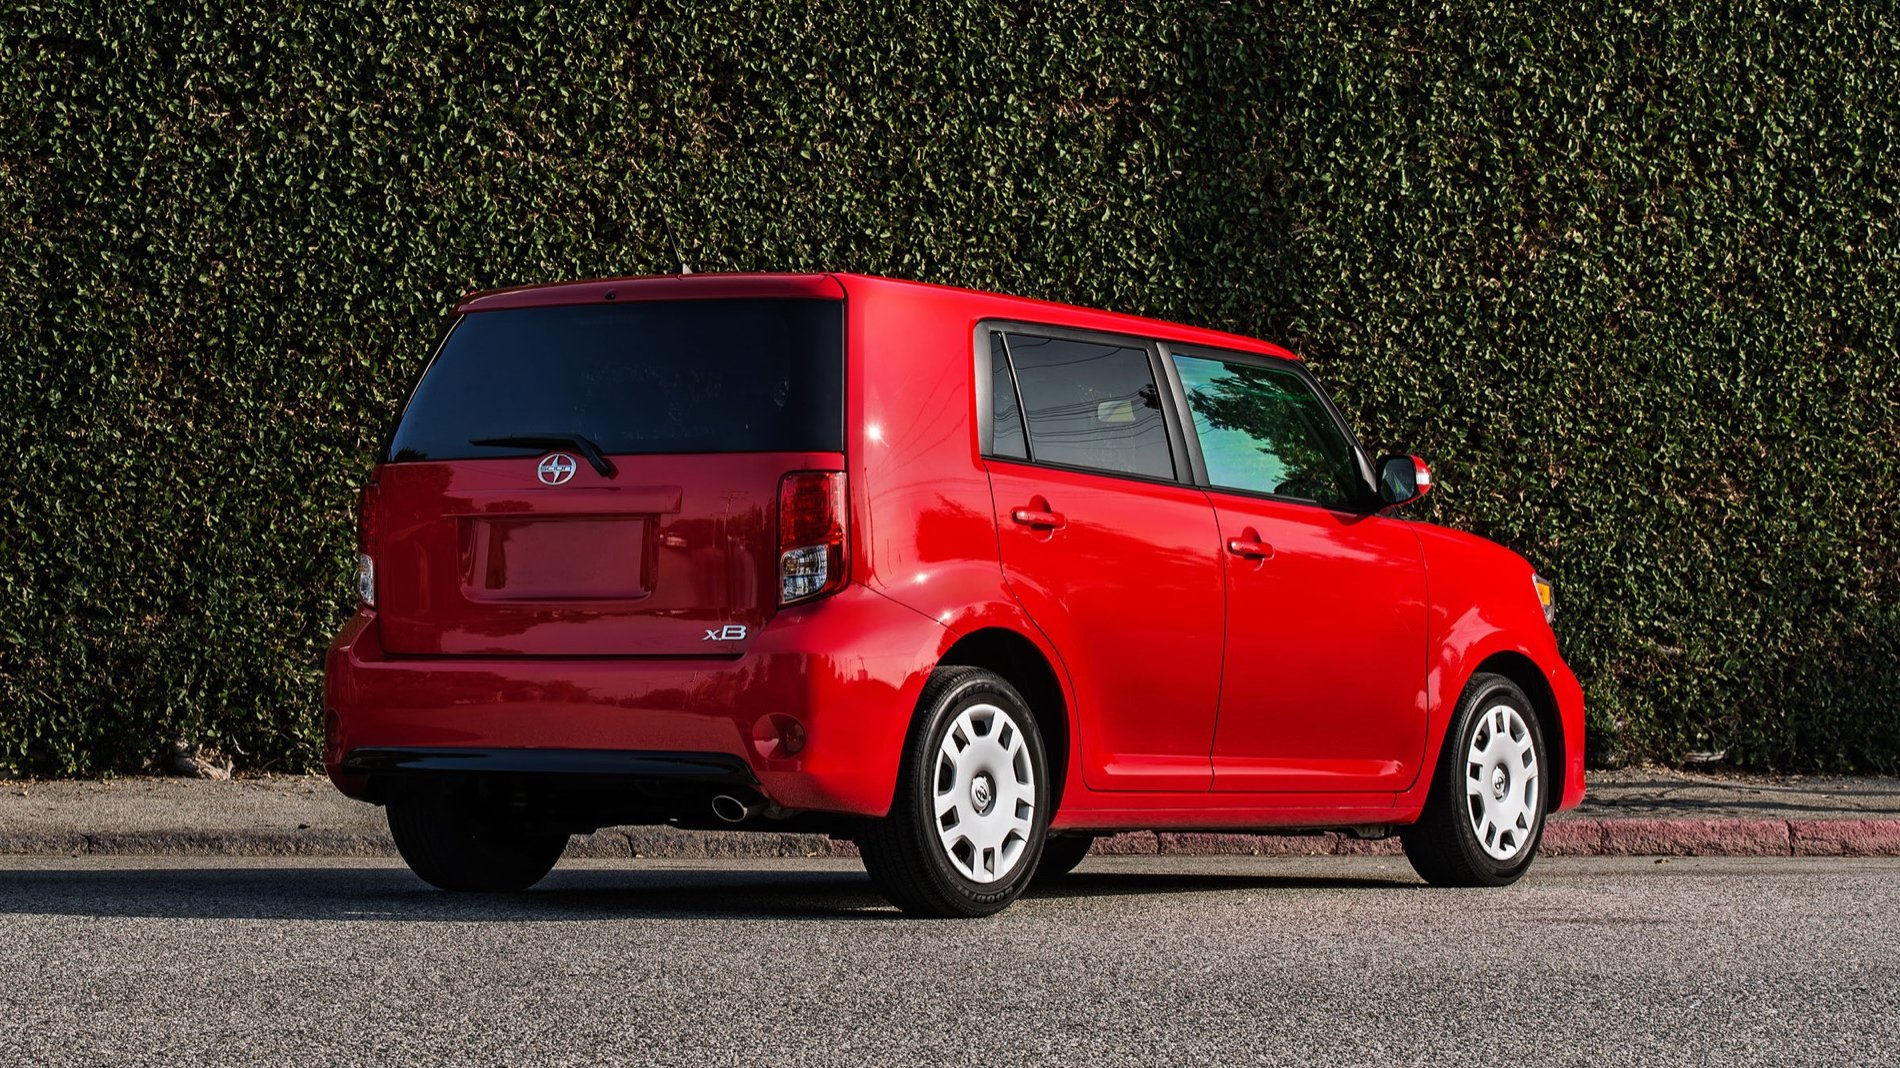 scion xb vs kia soul photo comparison pricing specs kia news blog. Black Bedroom Furniture Sets. Home Design Ideas